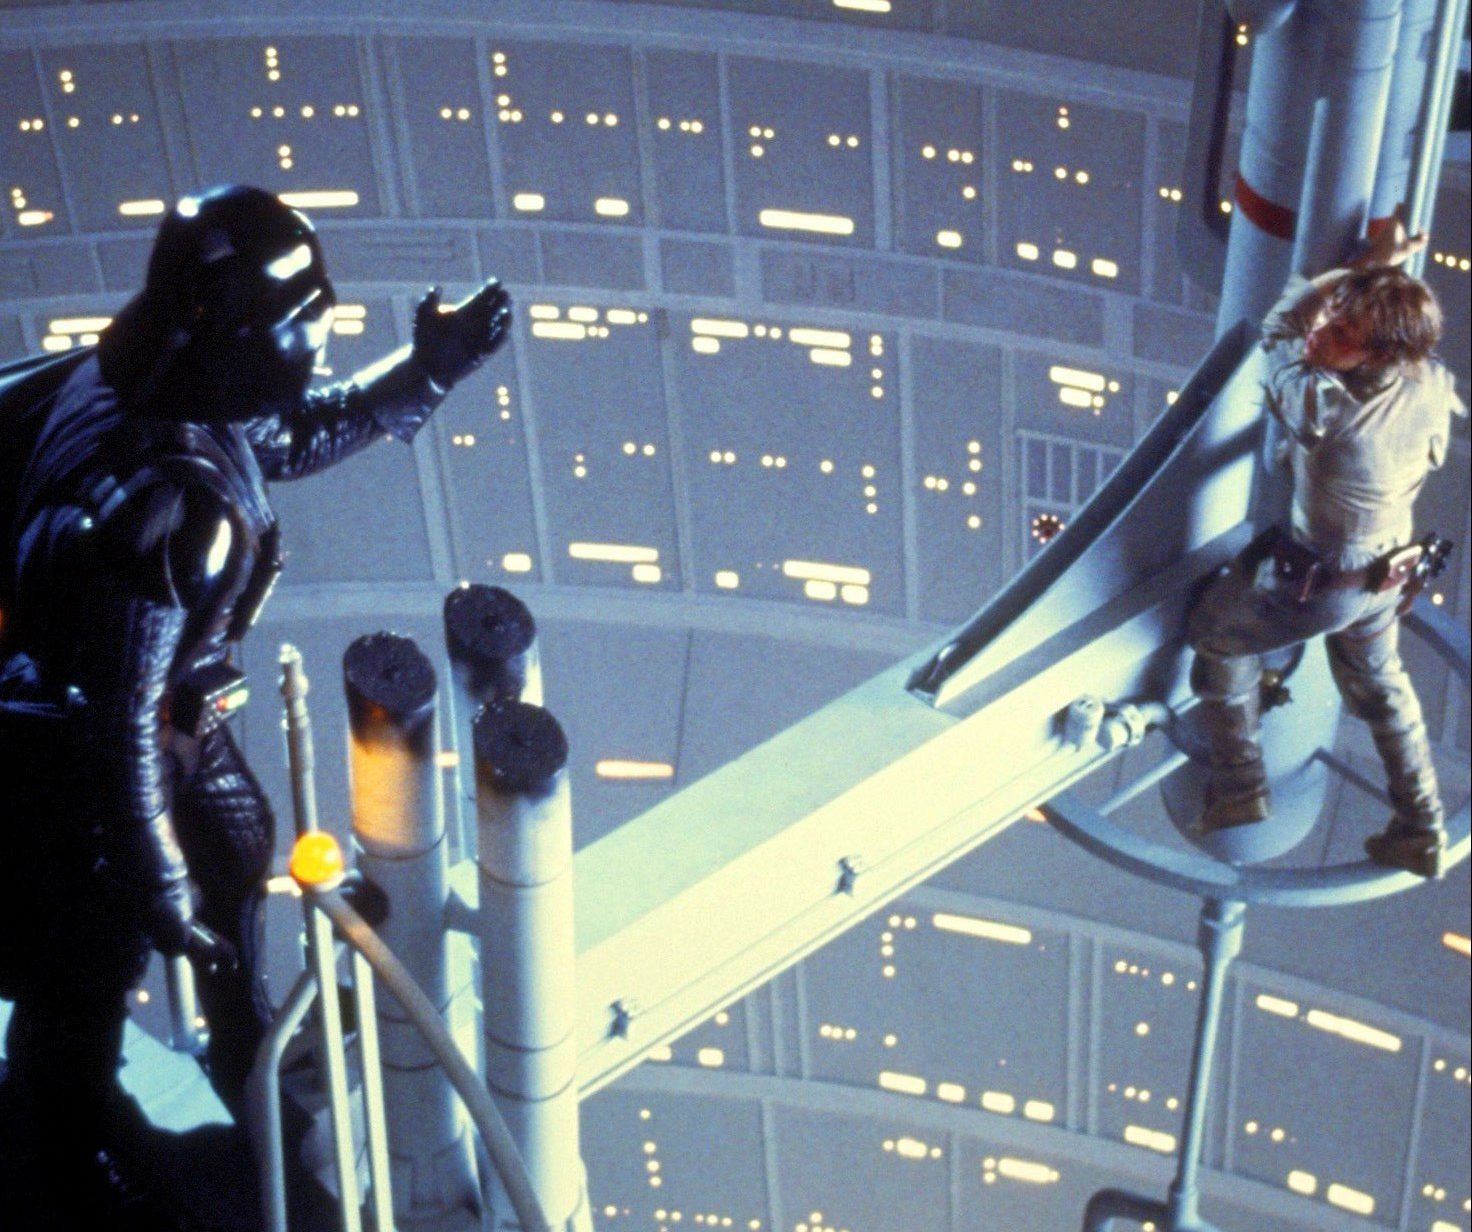 empire strikes back 1 e1616587613324 20 Films That Prove The 1980s Was The Greatest Decade